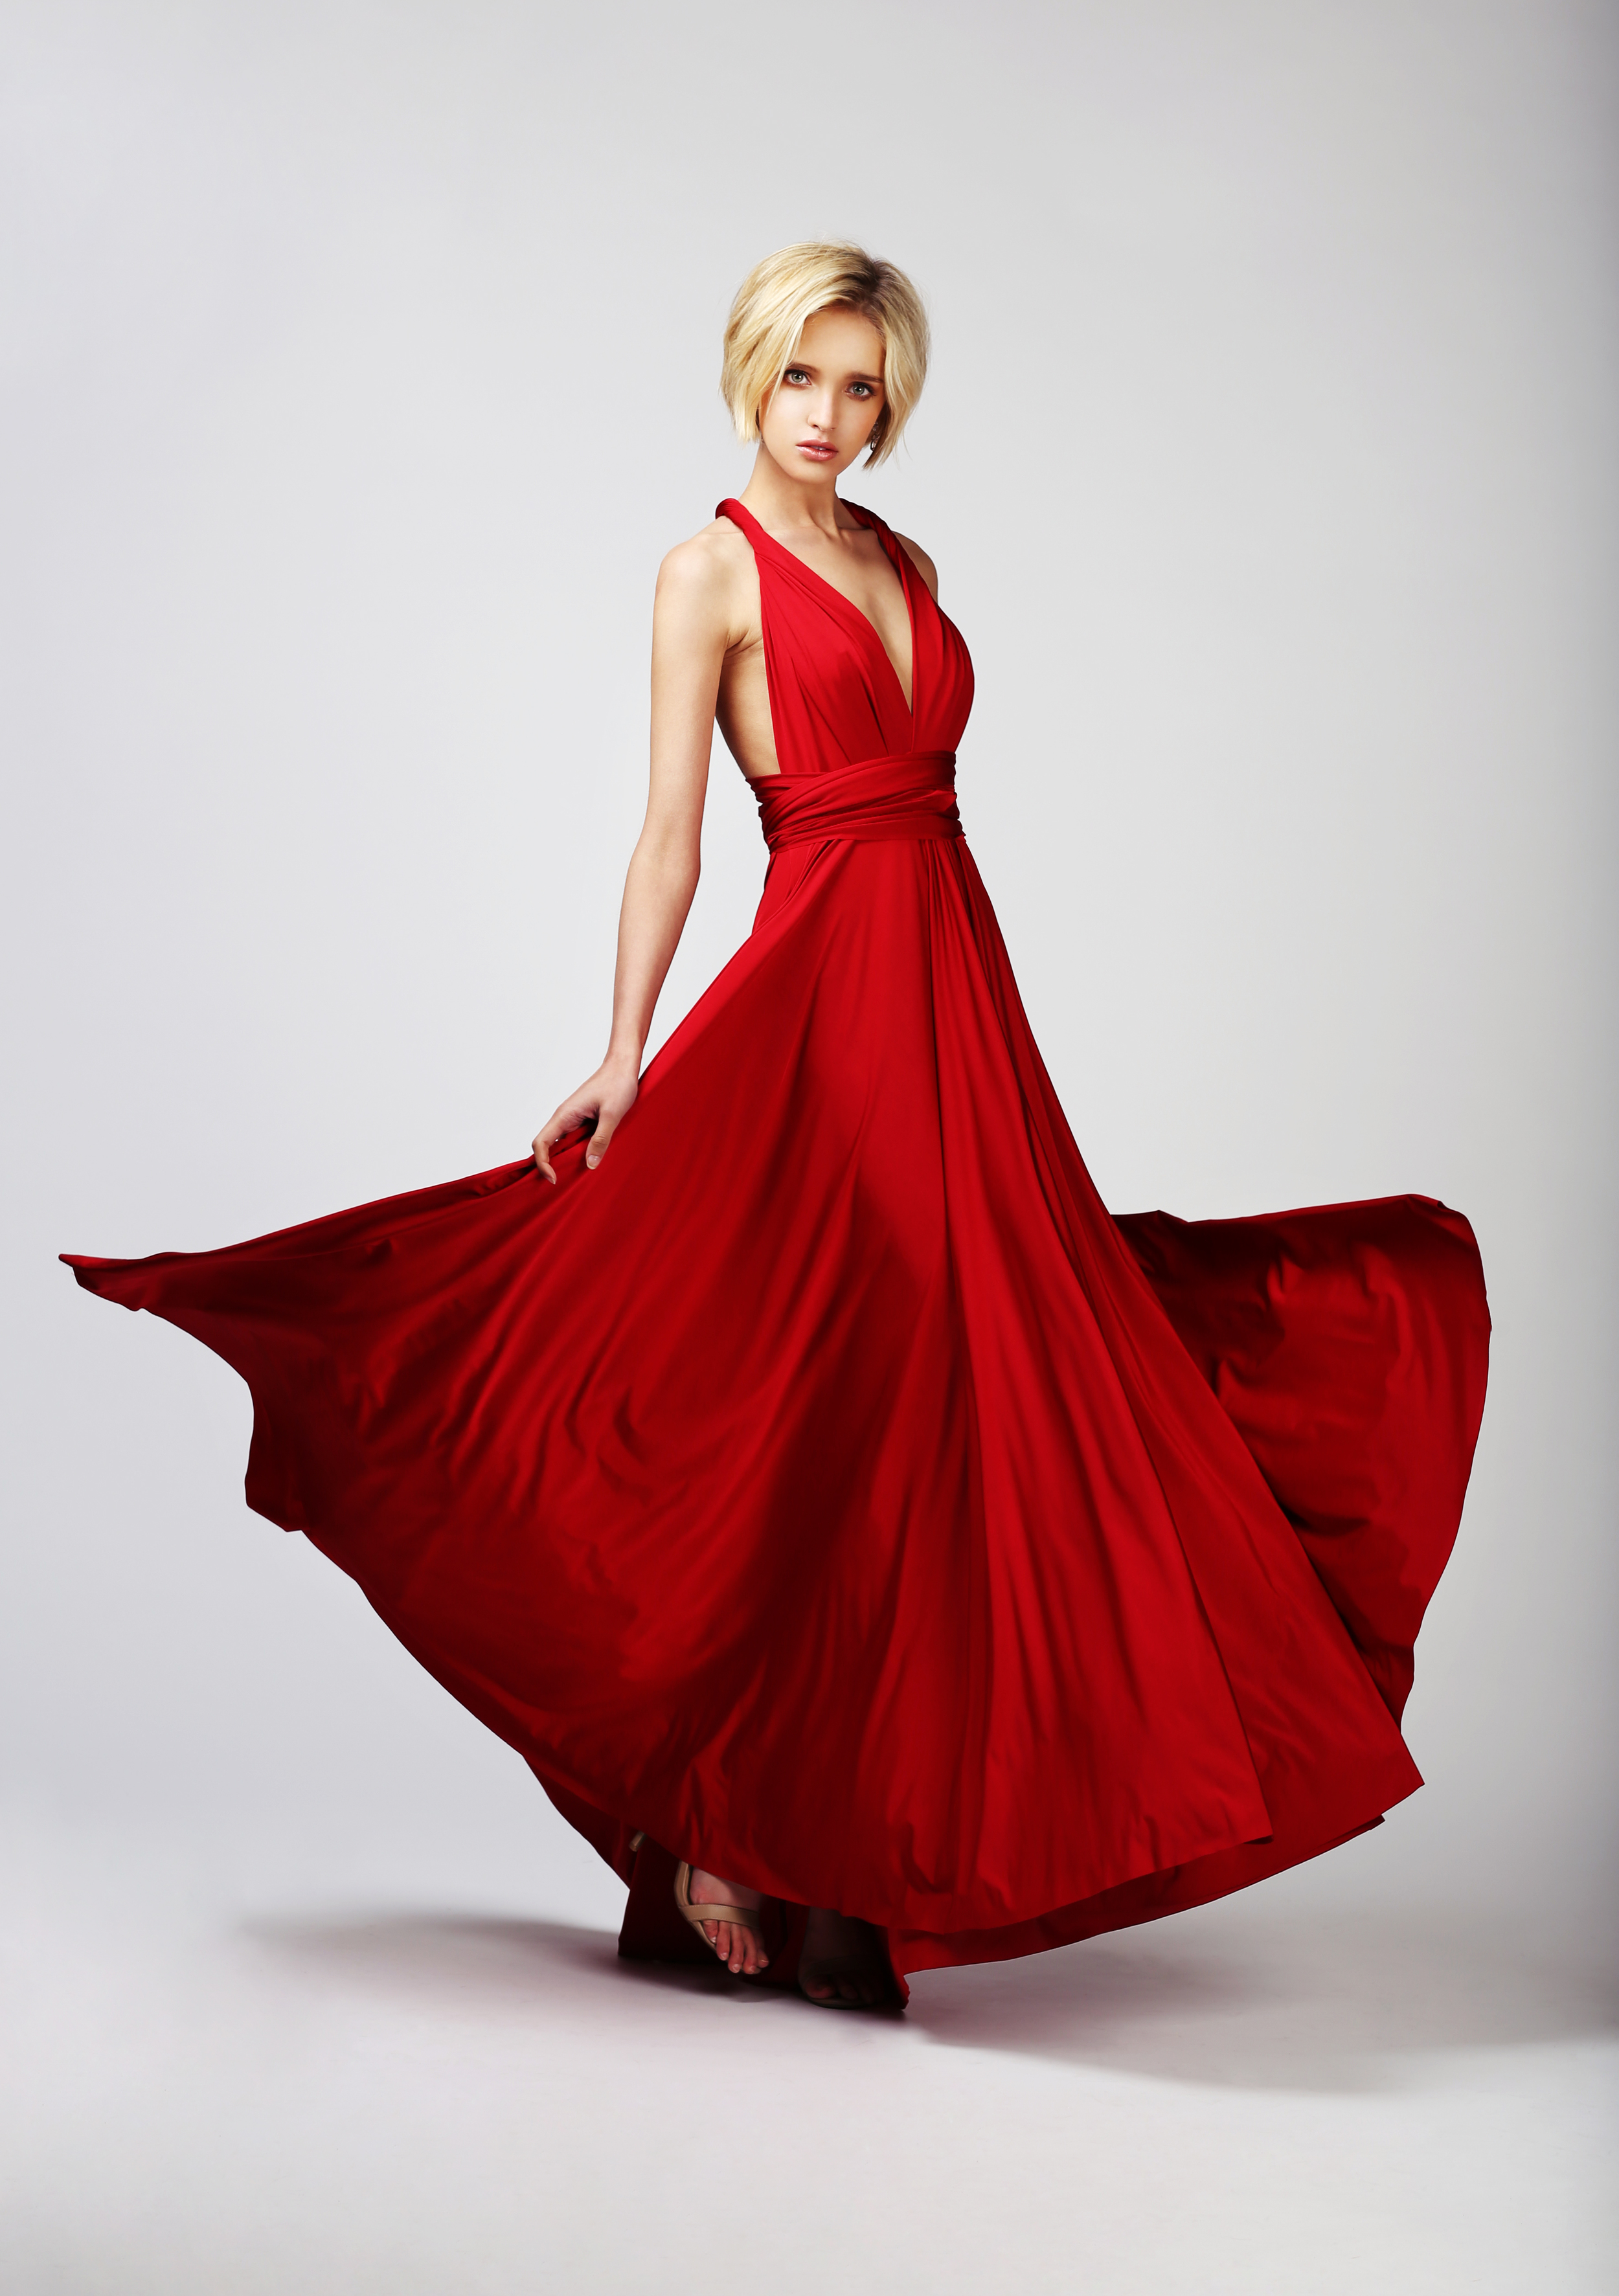 TWO BIRDS BALL GOWN - CABERNET RED